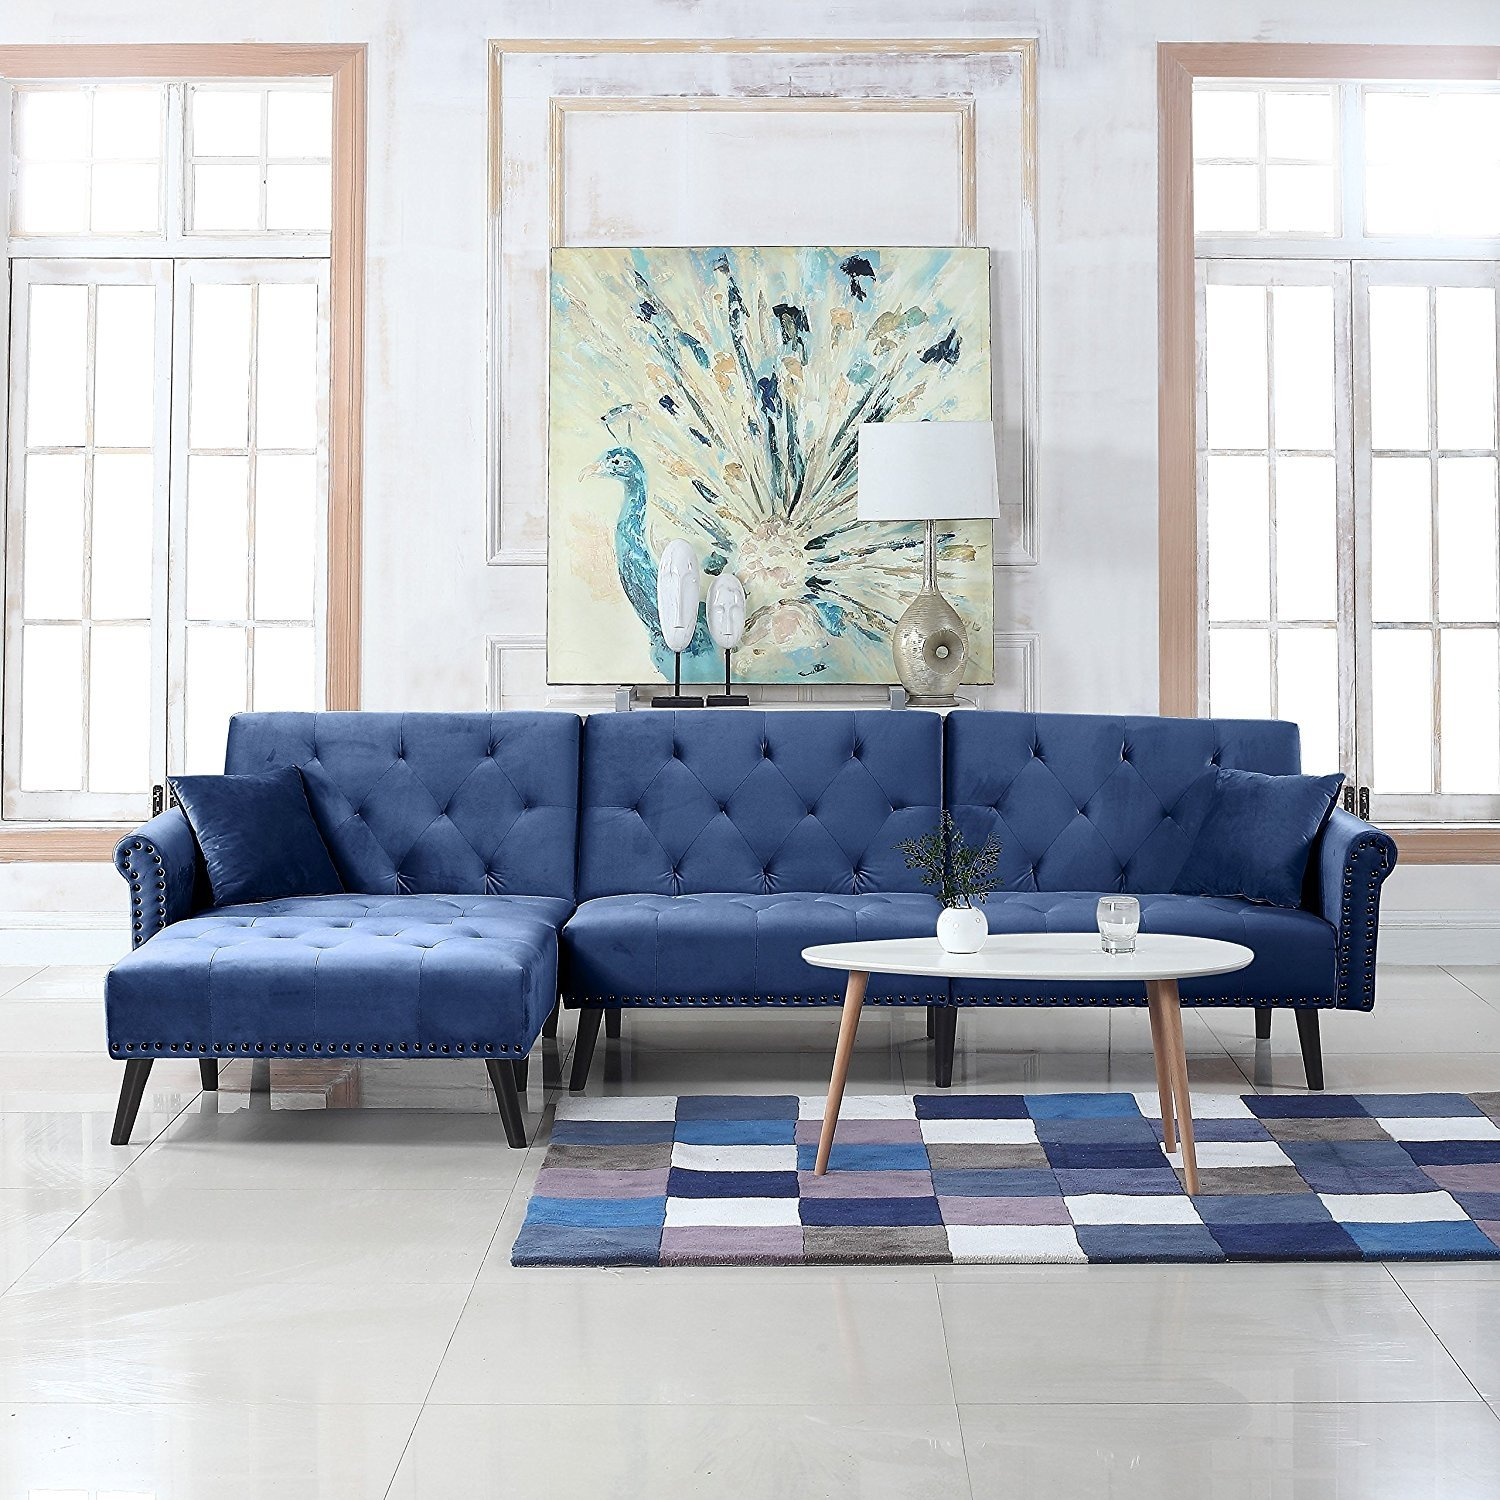 Details About Contemporary Modern Velvet Sleeper Futon Sofa Mid Century L Shape Couch Navy